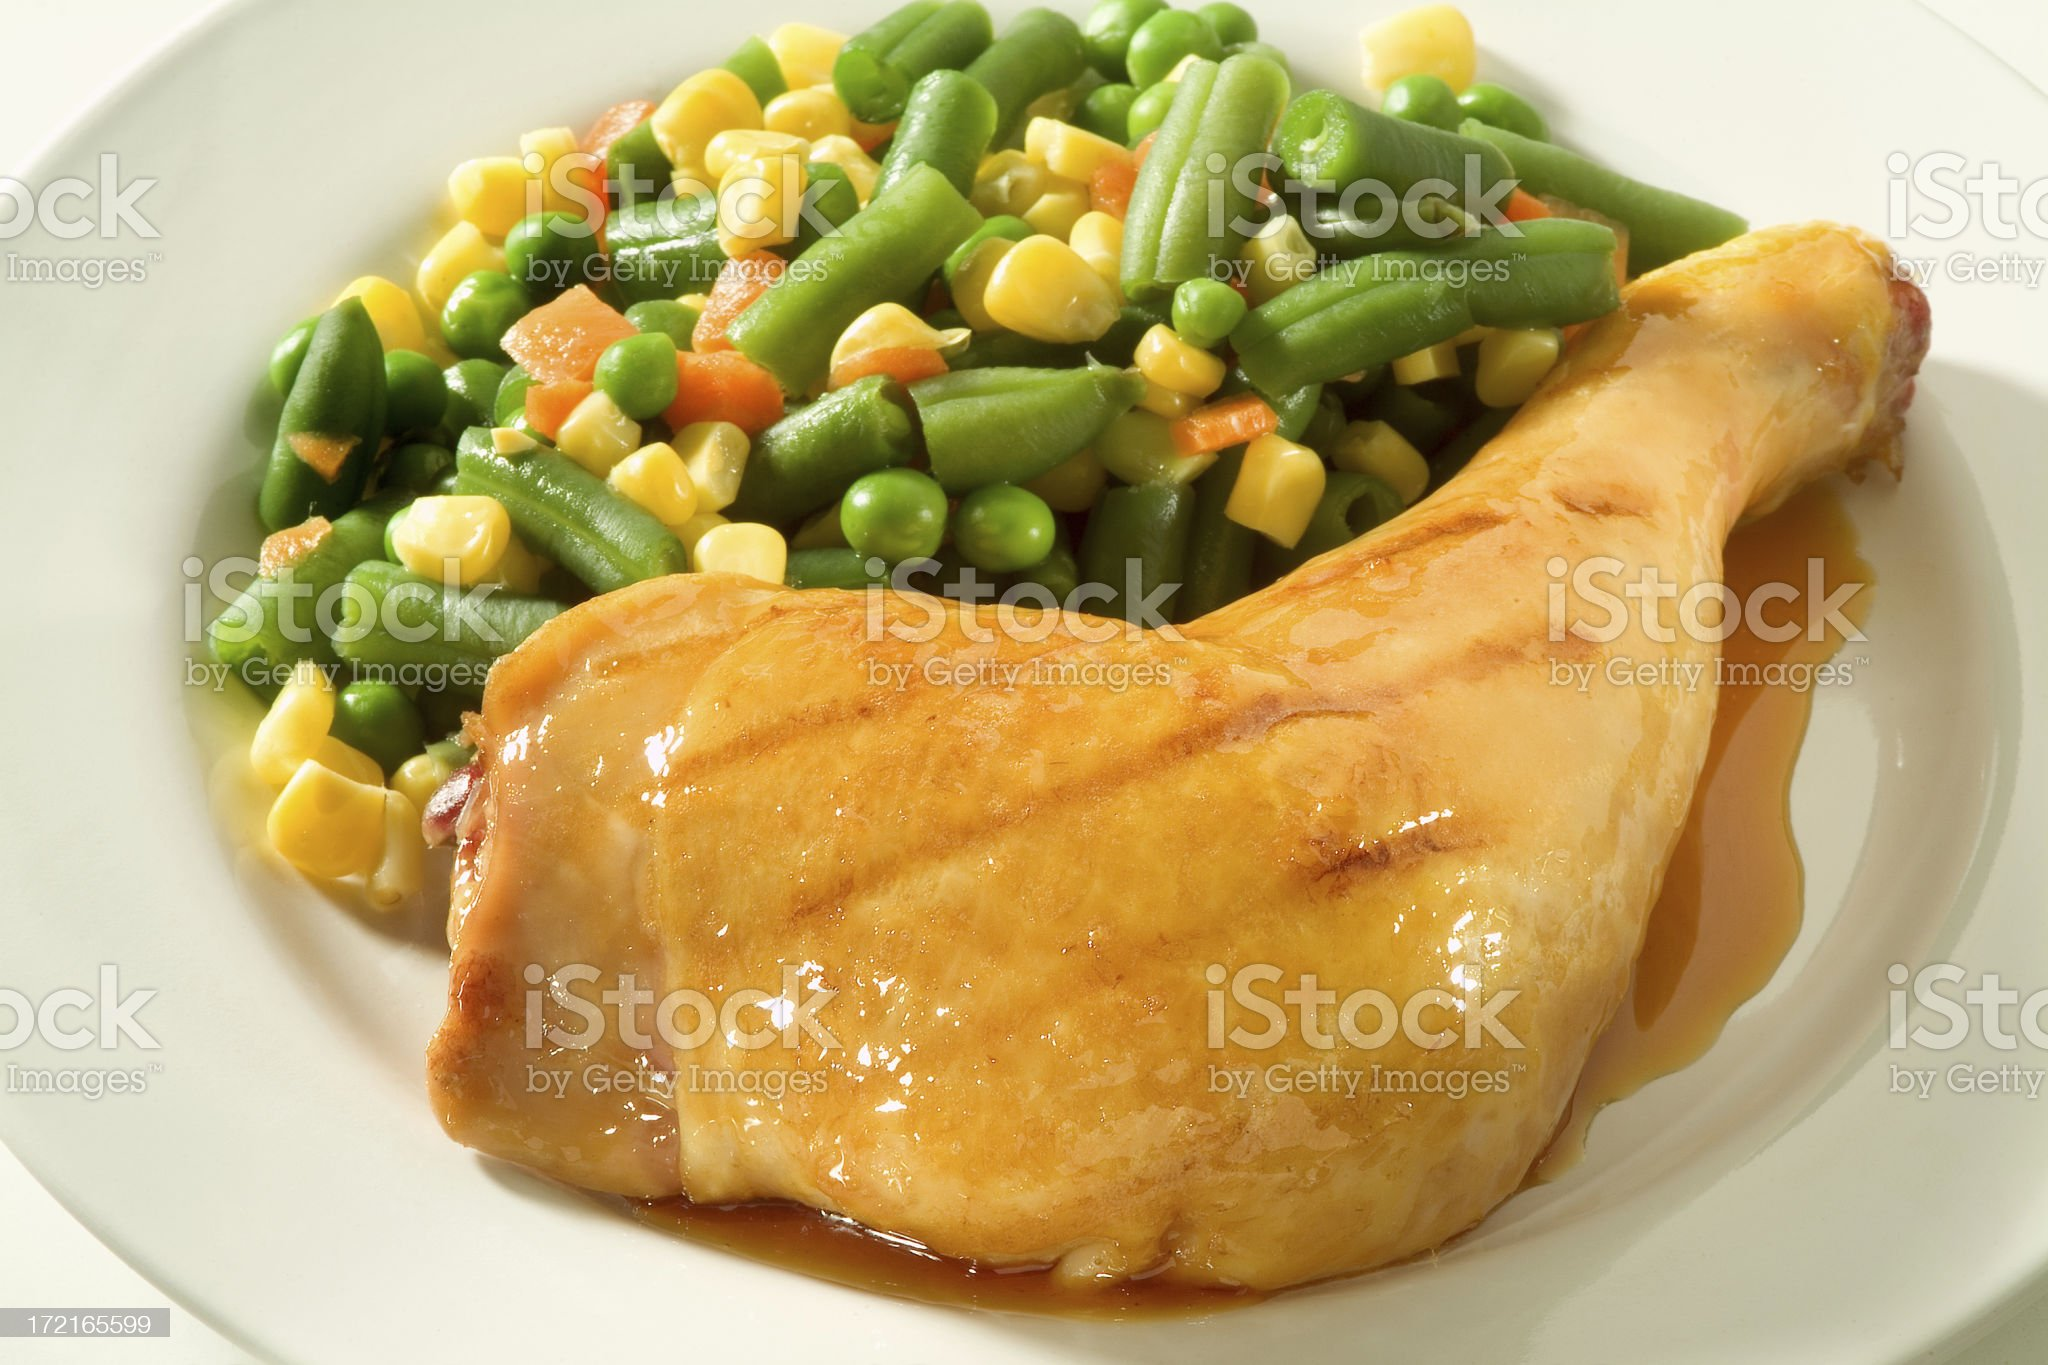 Grilled chicken leg with vegetables royalty-free stock photo